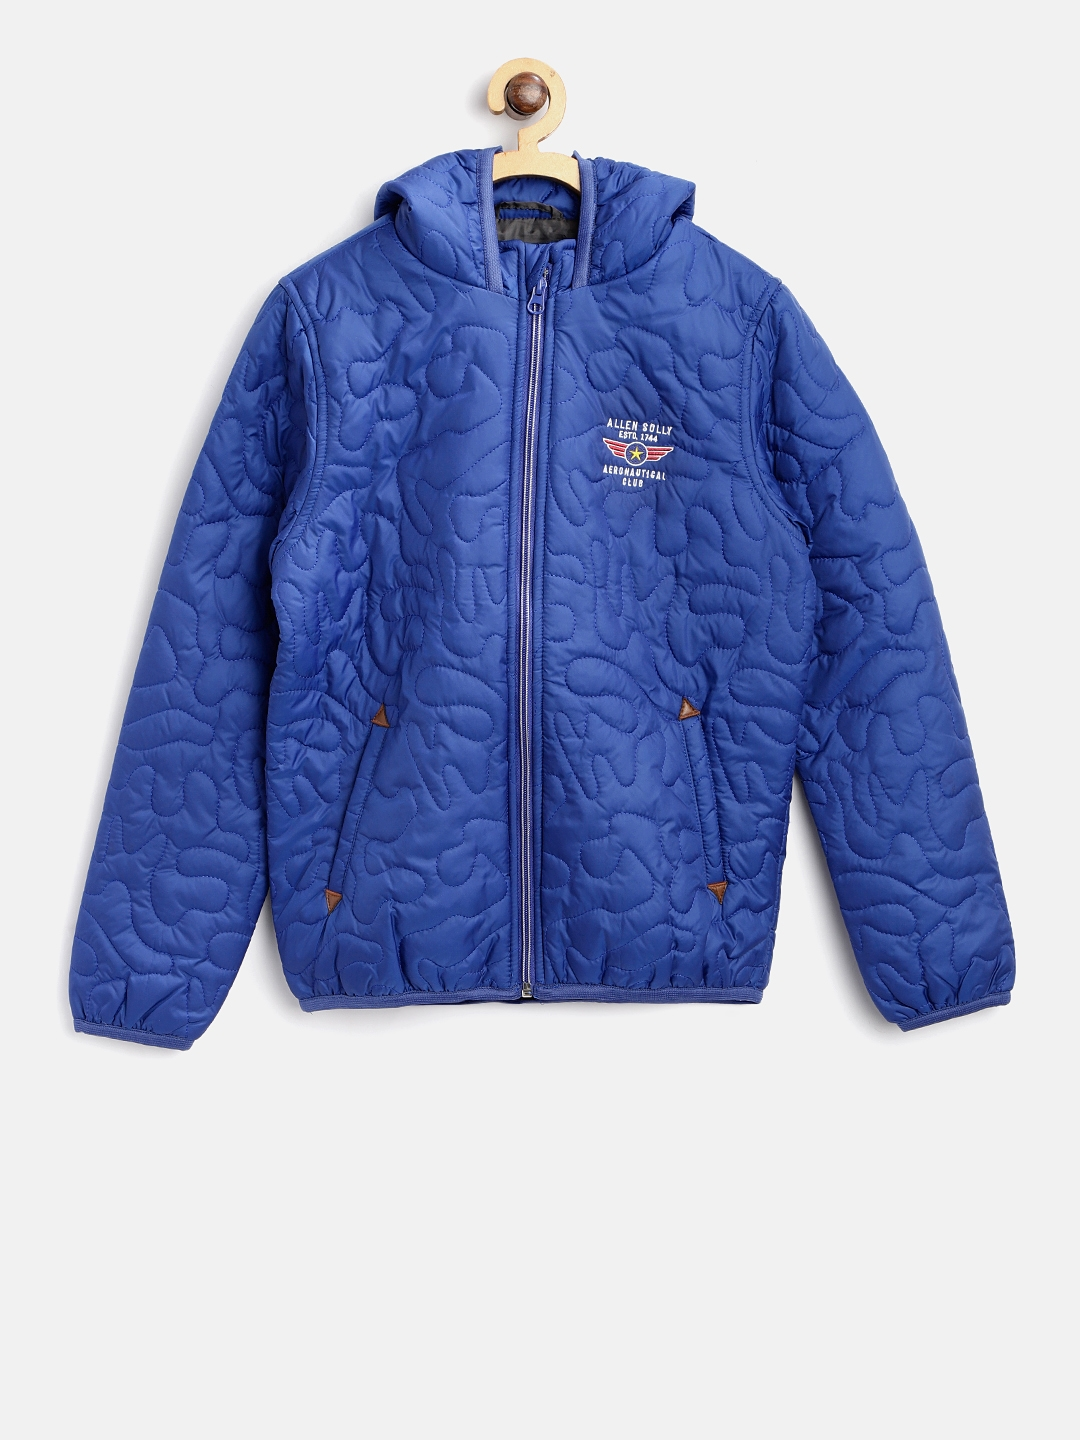 d826987b7 Buy Allen Solly Junior Boys Blue Hooded Quilted Jacket - Jackets for ...